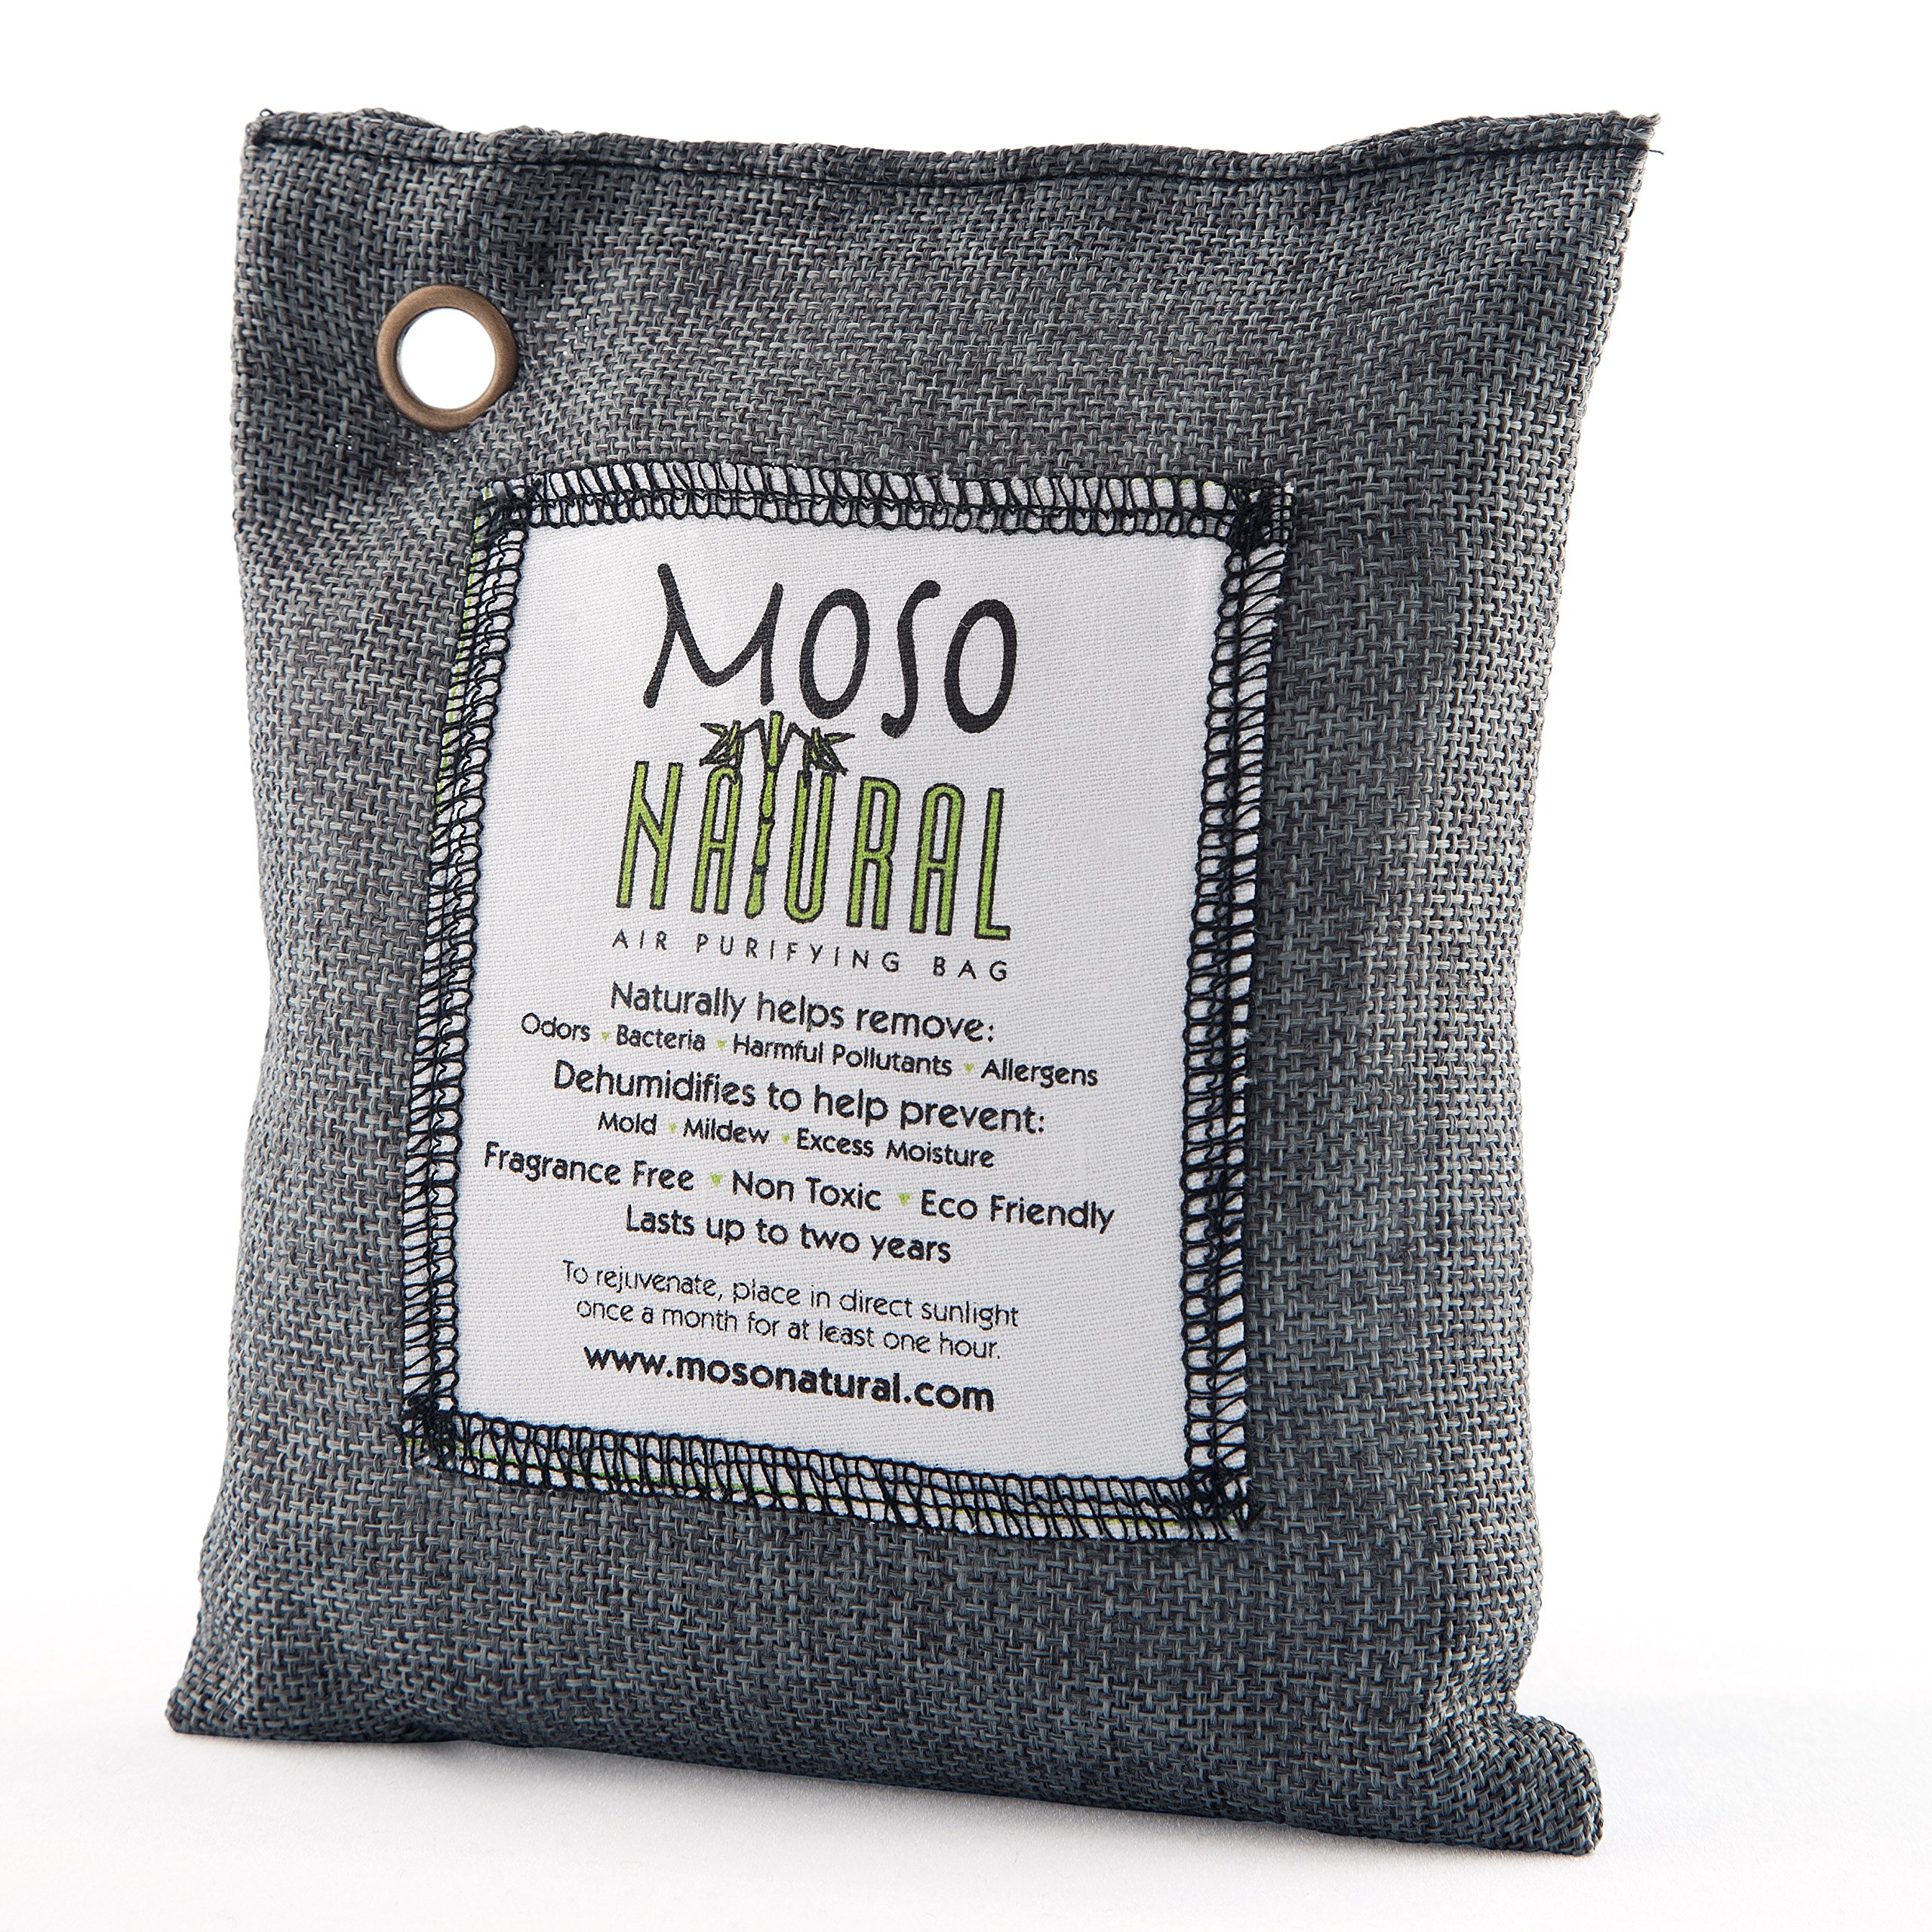 Moso Natural Air Purifying Bag. Odor Eliminator for Cars, Closets, Bathrooms and Pet Areas. Captures and Eliminates Odors. (Charcoal, 200 gm)